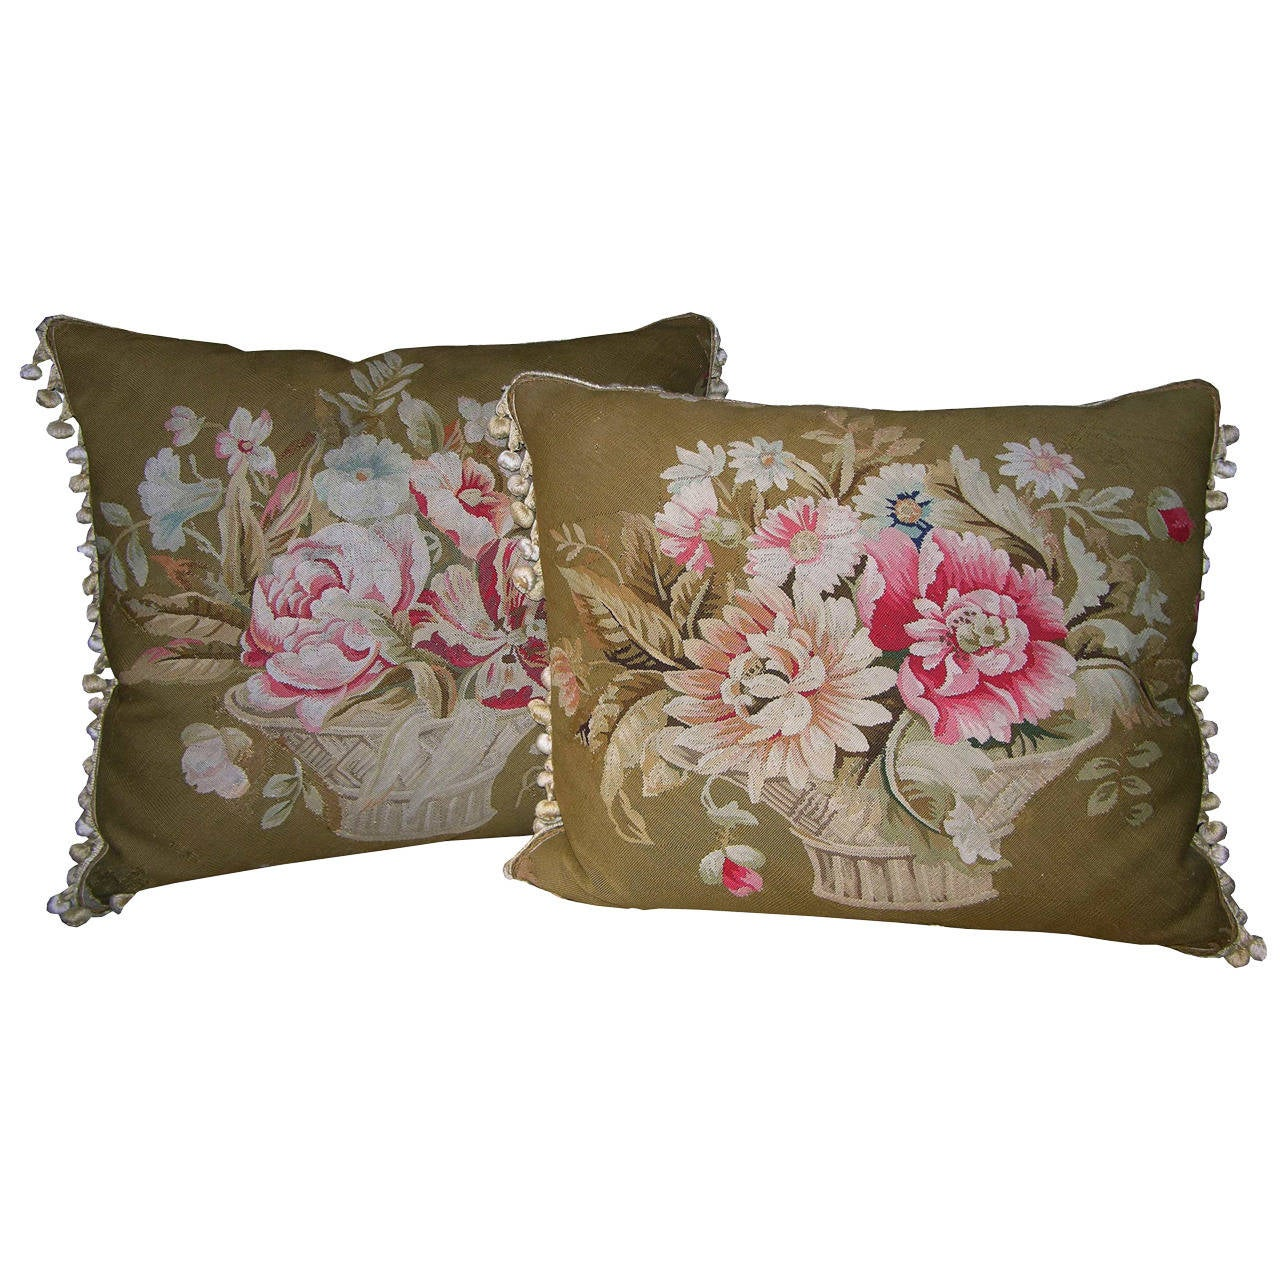 Pair of French Aubusson Pillows, circa 1860 For Sale